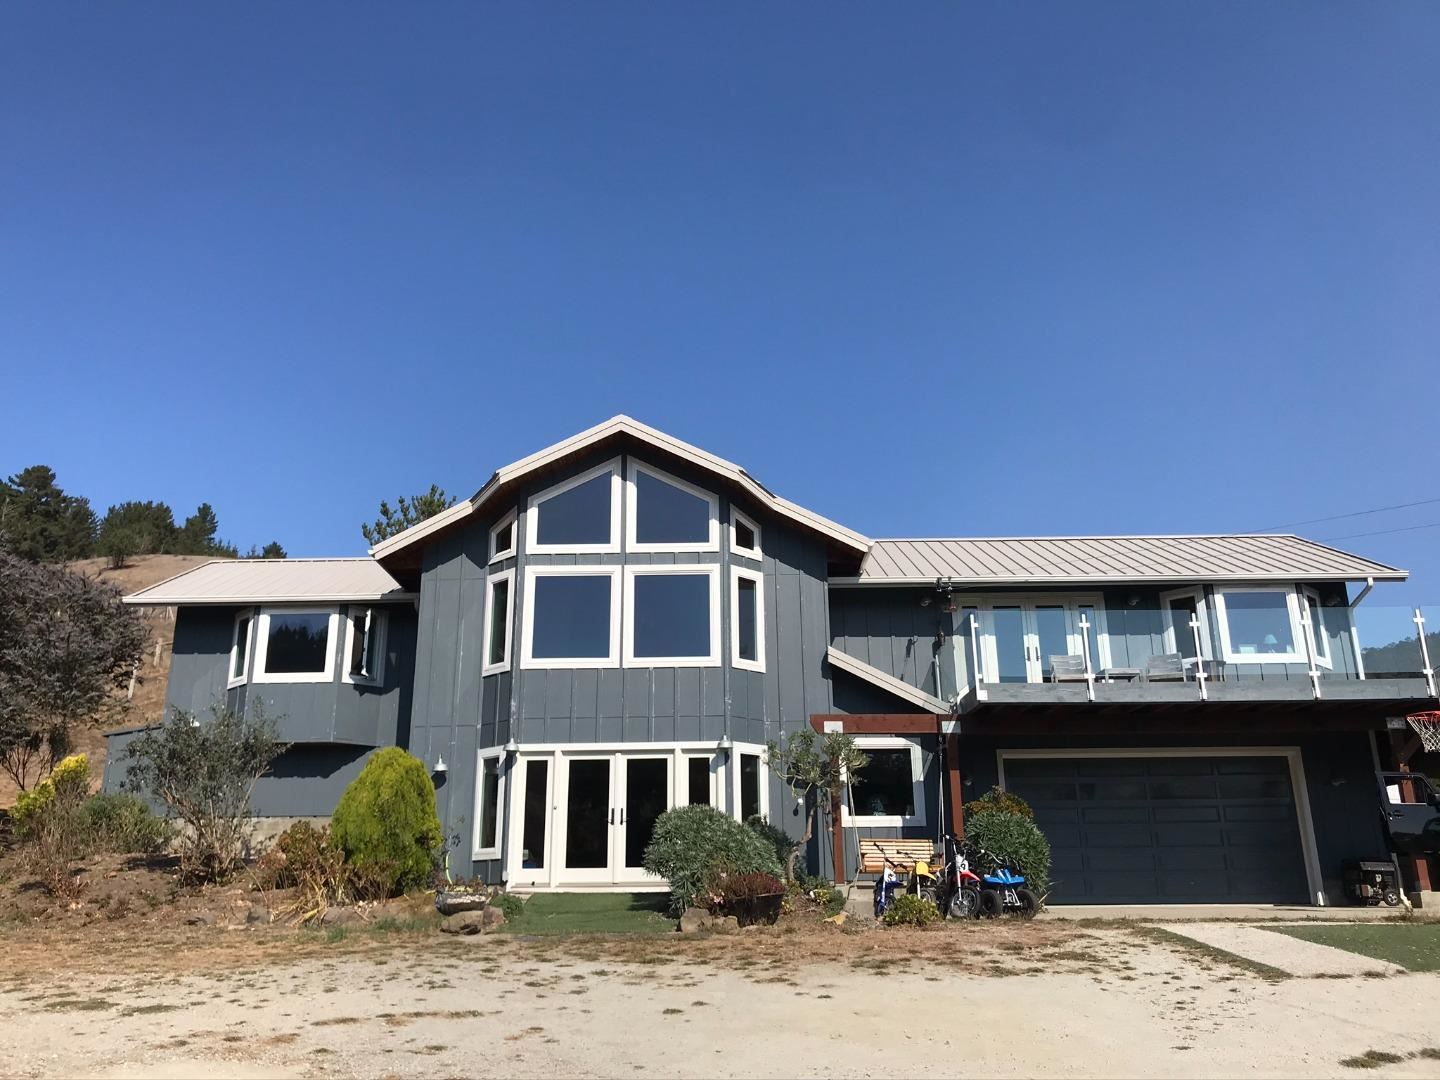 Photo for 2481 Purissima Creek RD, HALF MOON BAY, CA 94019 (MLS # ML81821486)